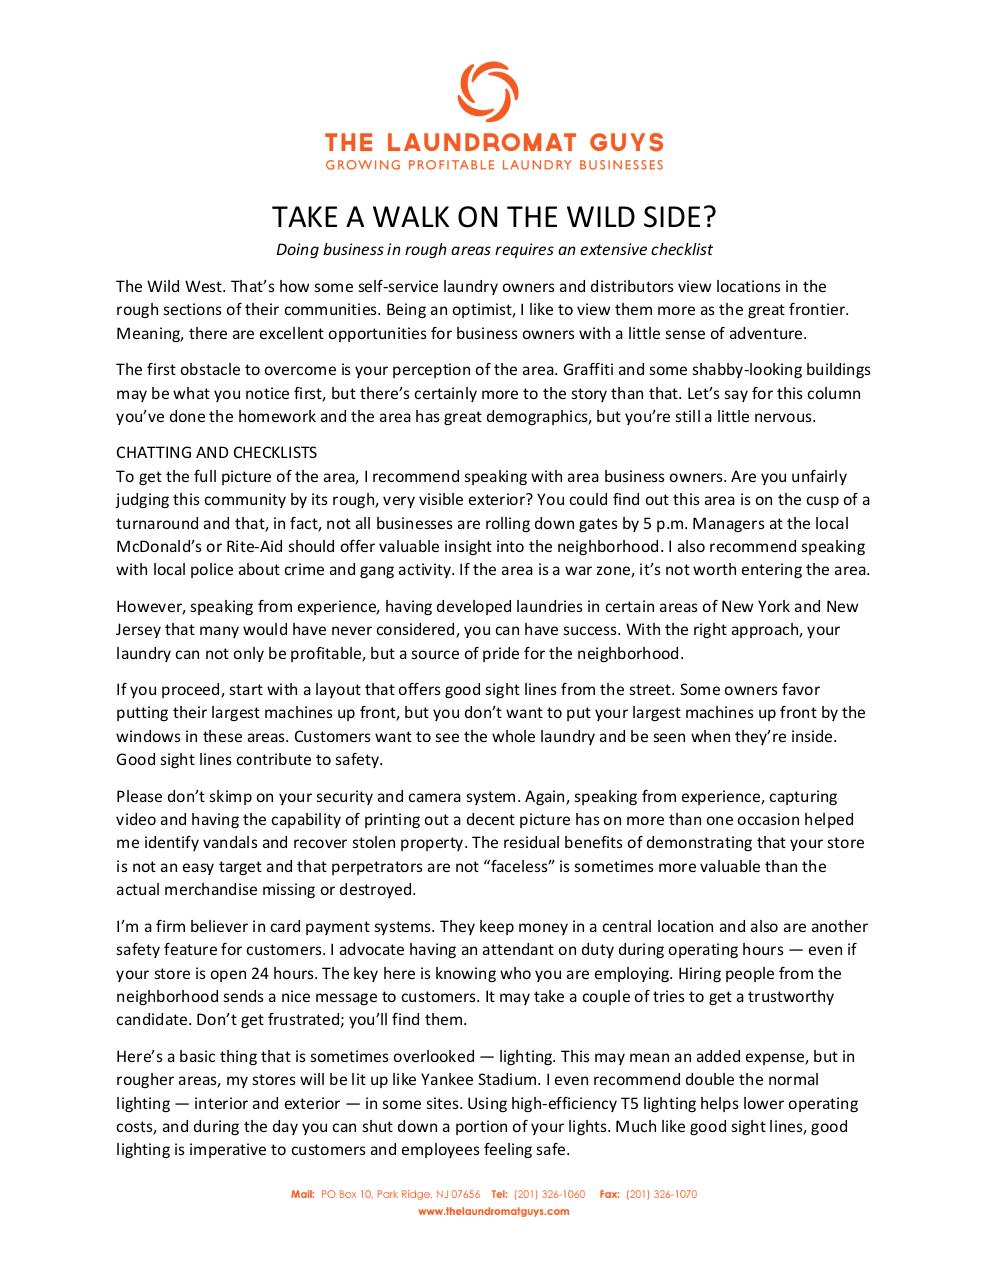 TAKE A WALK ON THE WILD SIDE.pdf - page 1/2